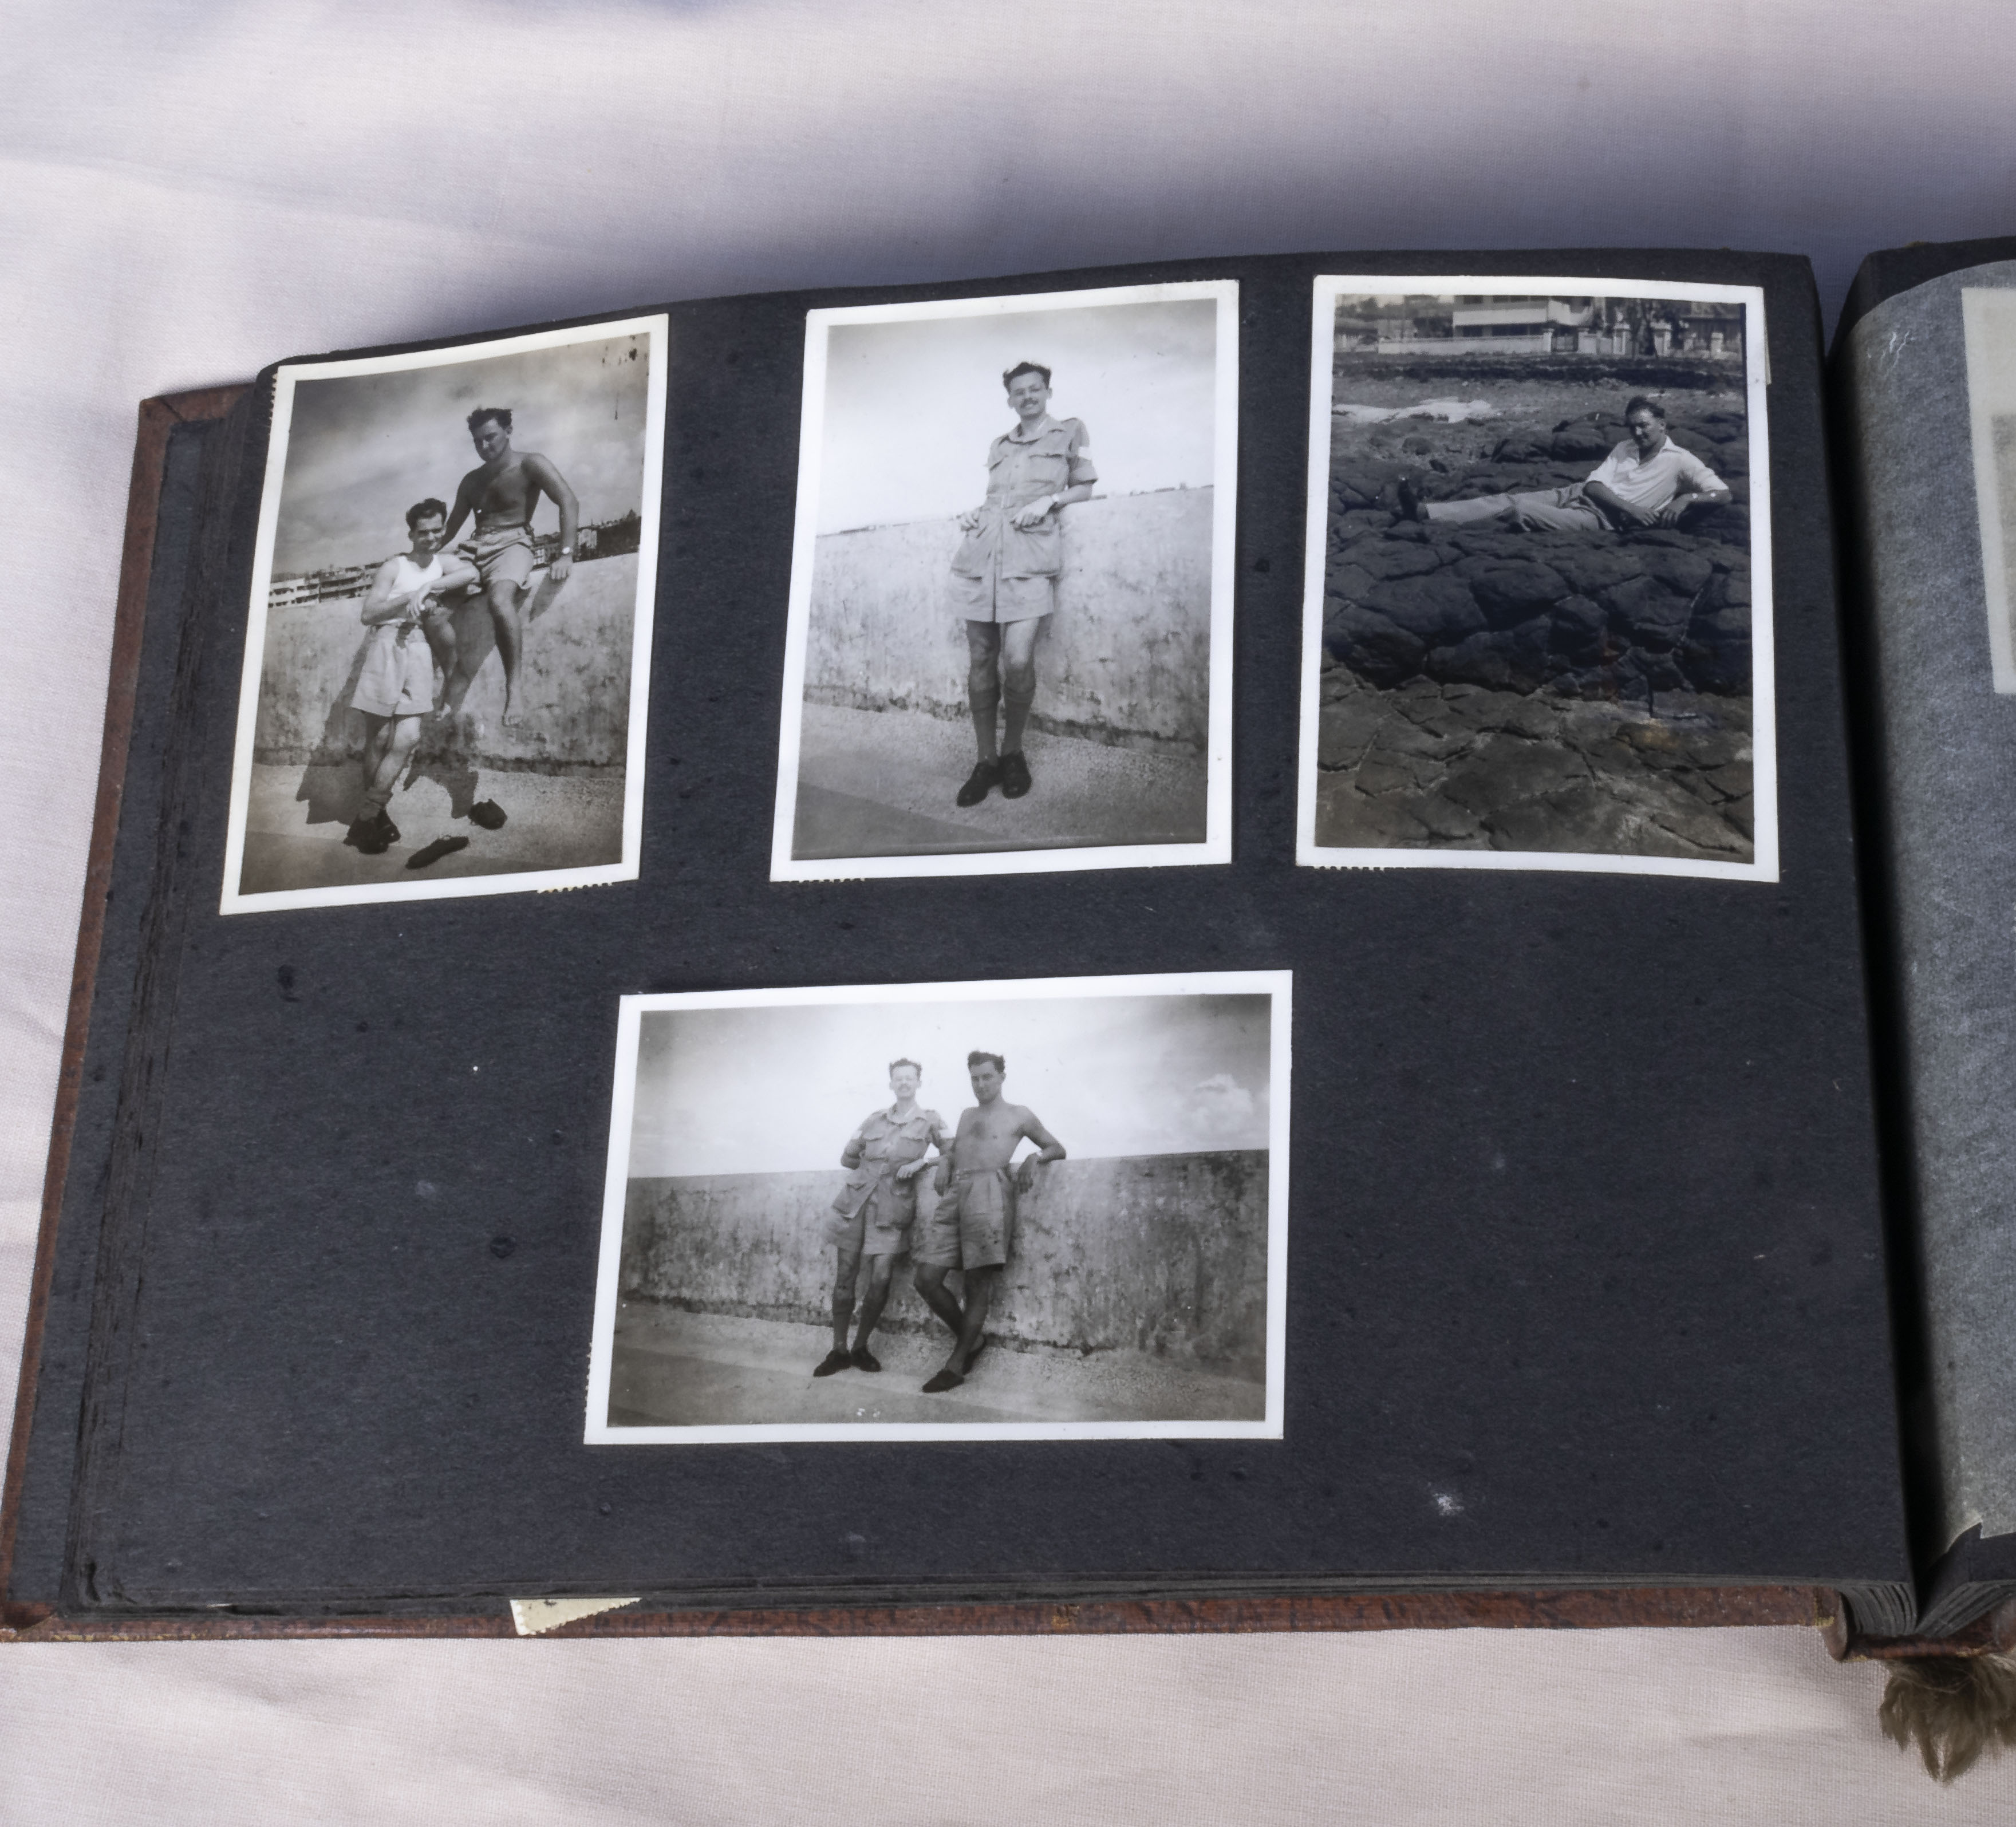 Military interest over 130 vintage photographs in album relating to the 1939-45 war years showing - Image 2 of 6